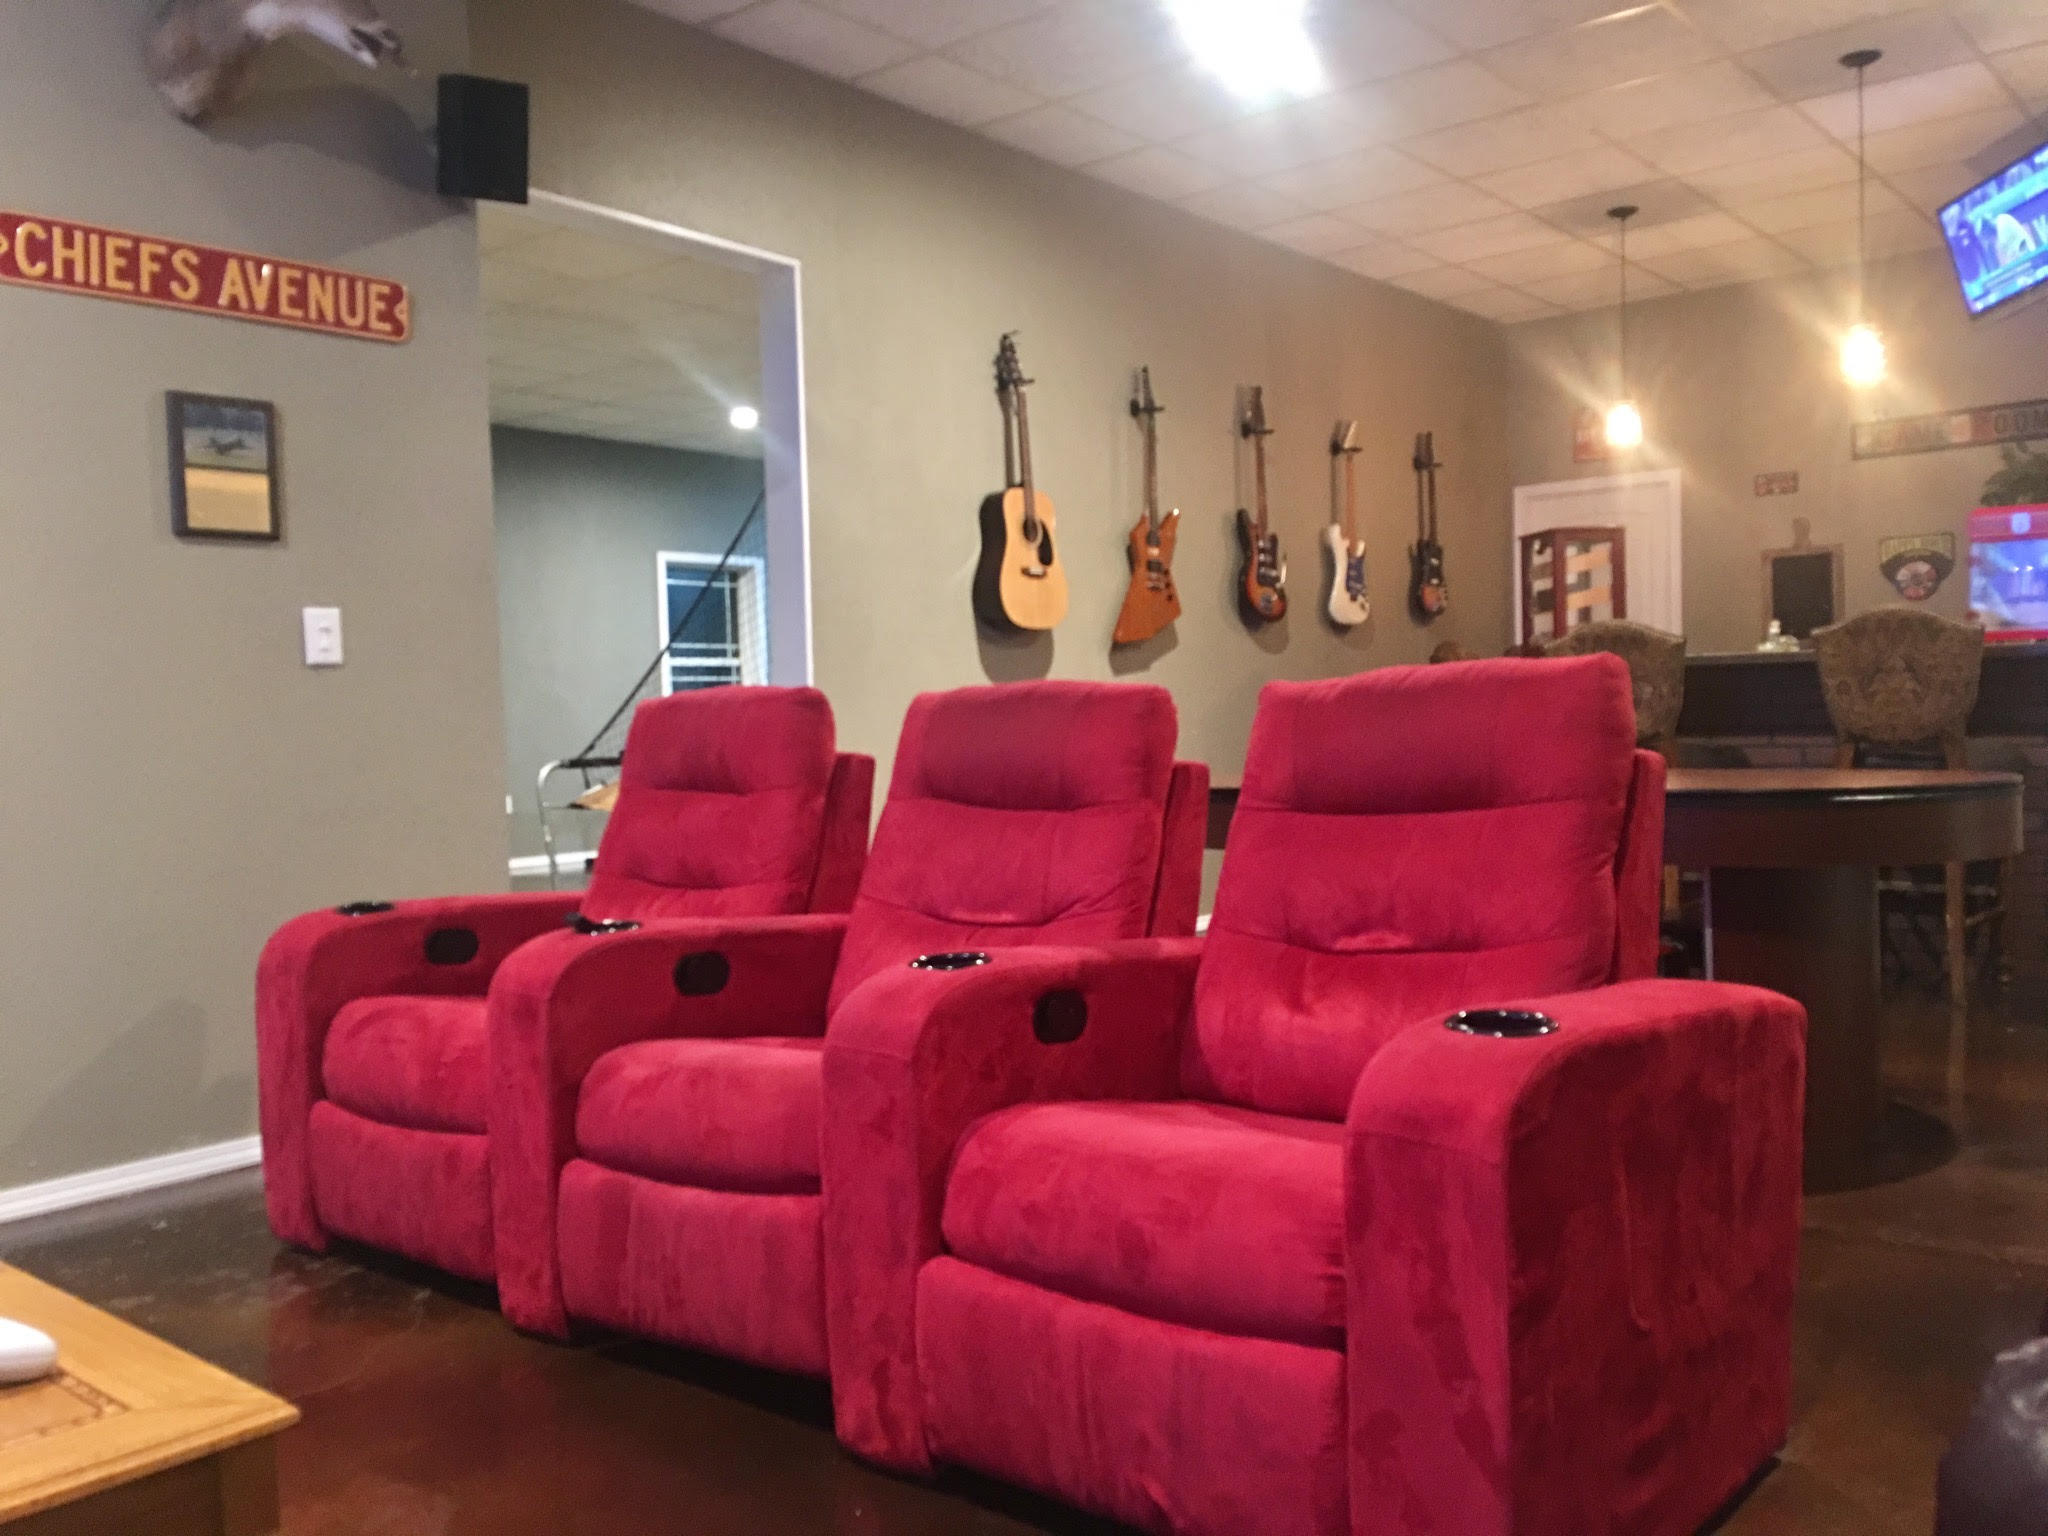 curtis-theater-red-chairs